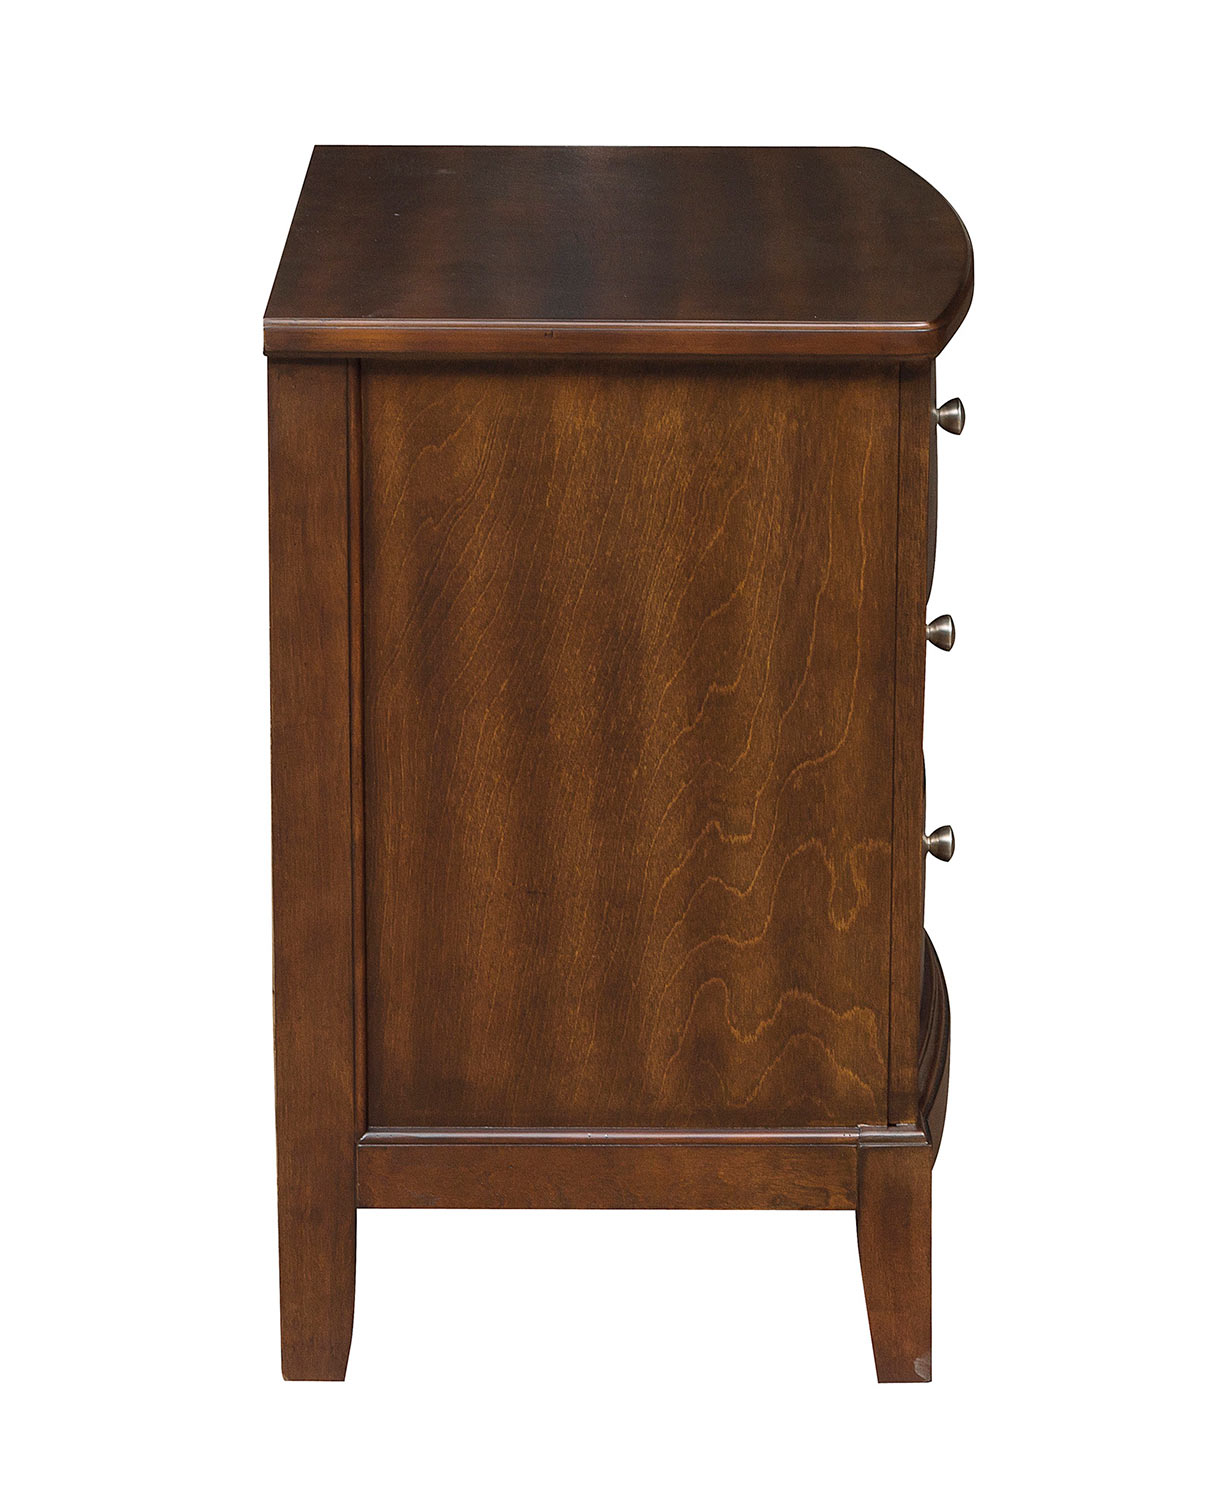 Homelegance Cotterill Night Stand - Cherry over Birch Veneer